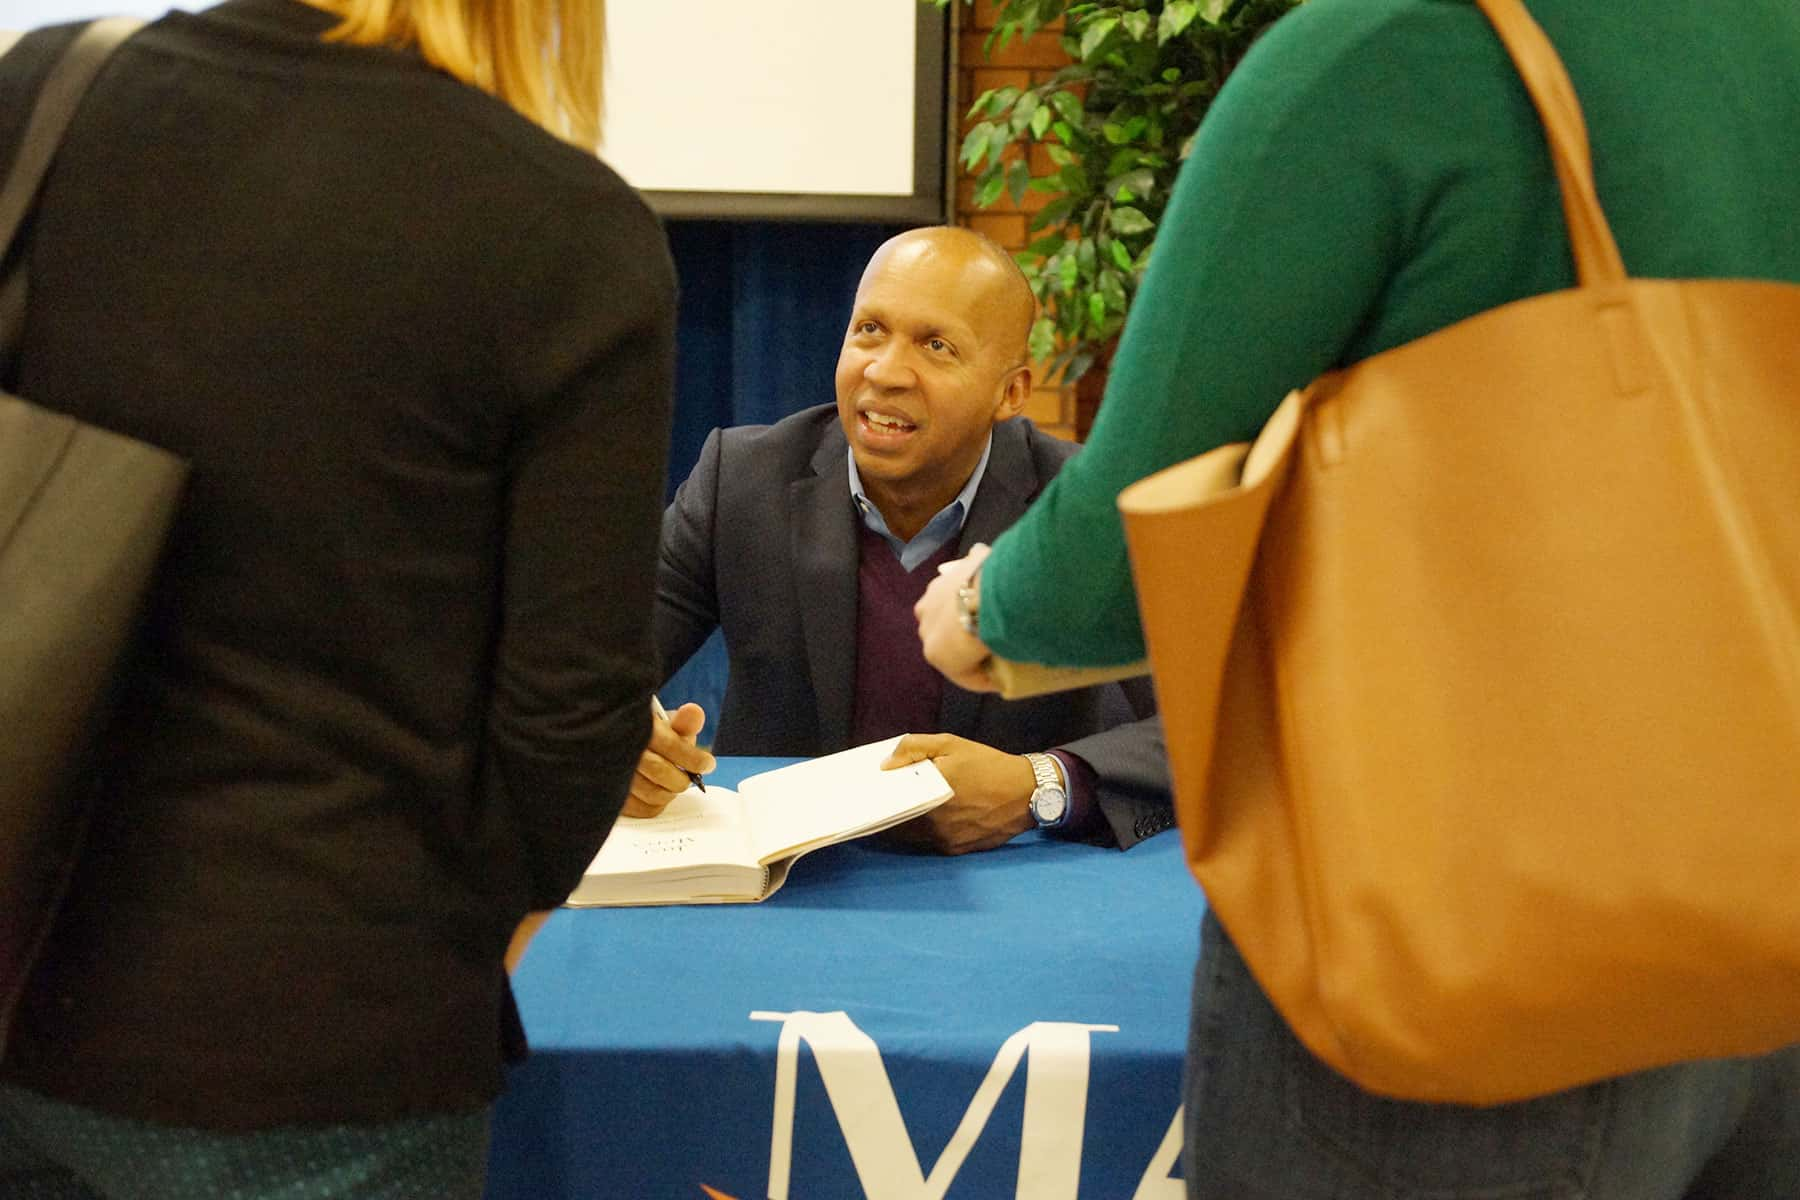 030916_BryanStevenson_660